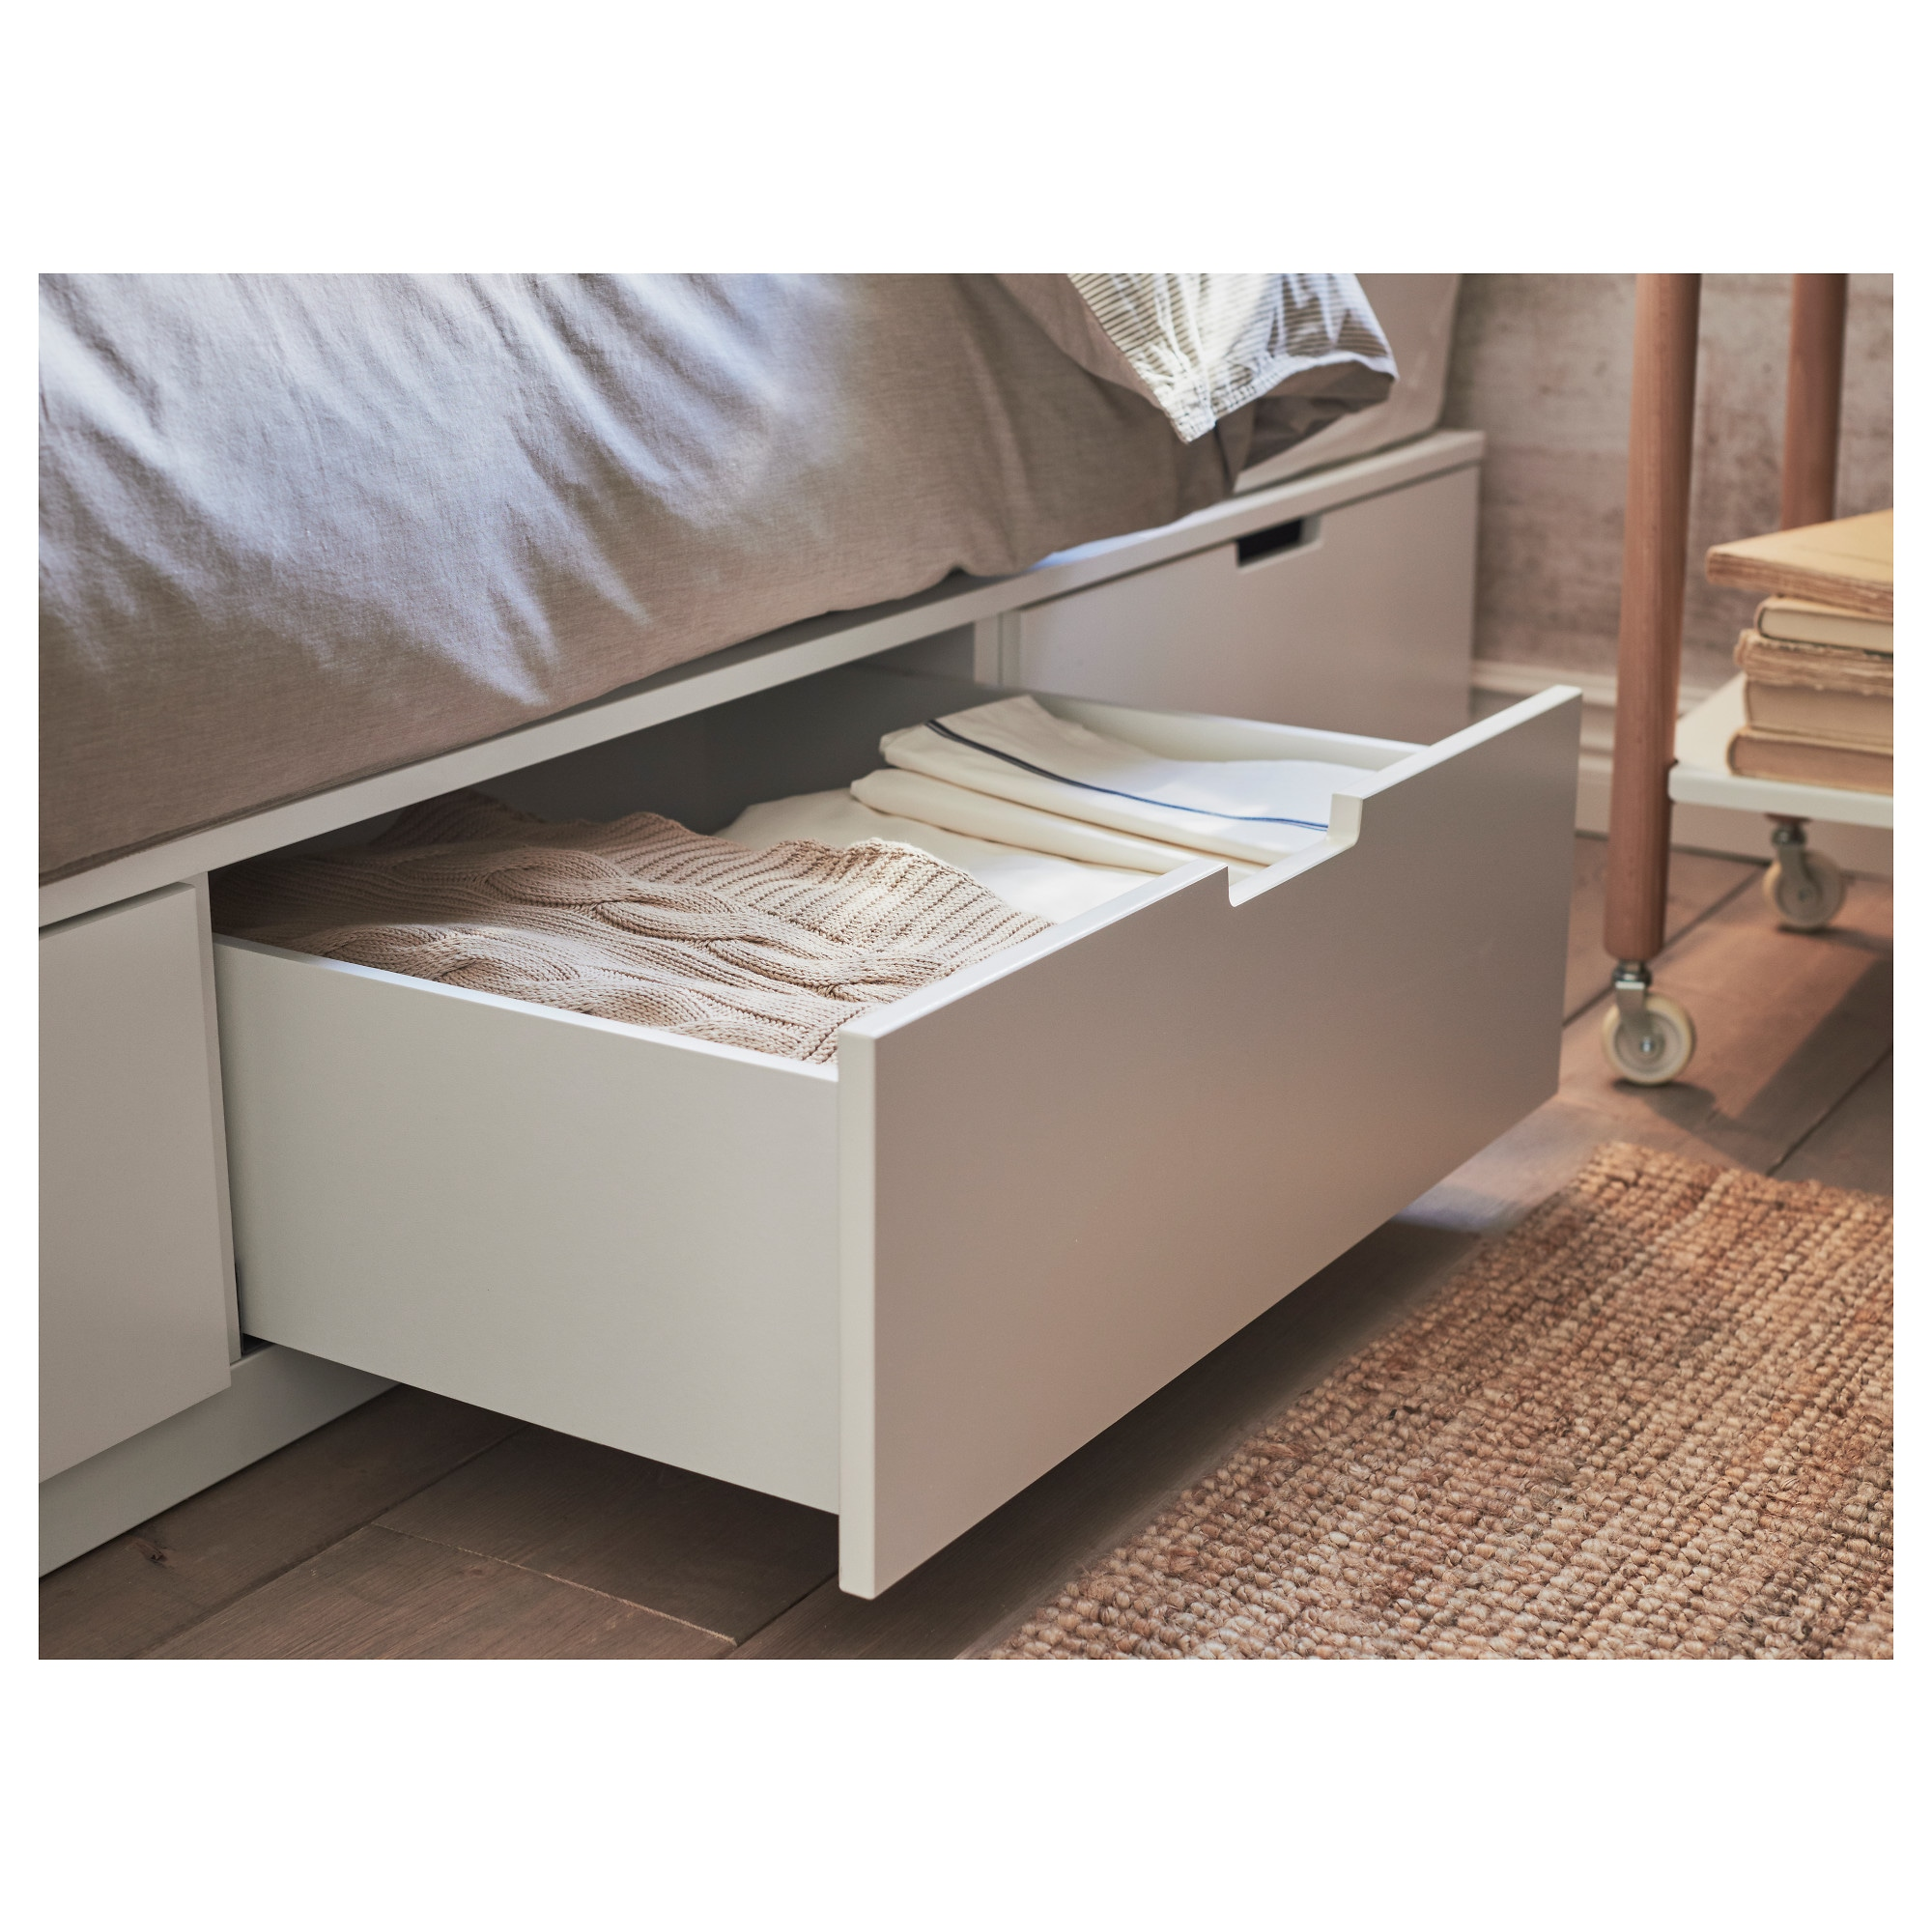 linen storage solid double single queen cotton frames platform simple drawers bed elegant full with underneath drawer space frame cover size using wooden sale bedroom offers black grey yellow wood furniture white beds pla gray king headboard base and blanket ikea of mattress cheap